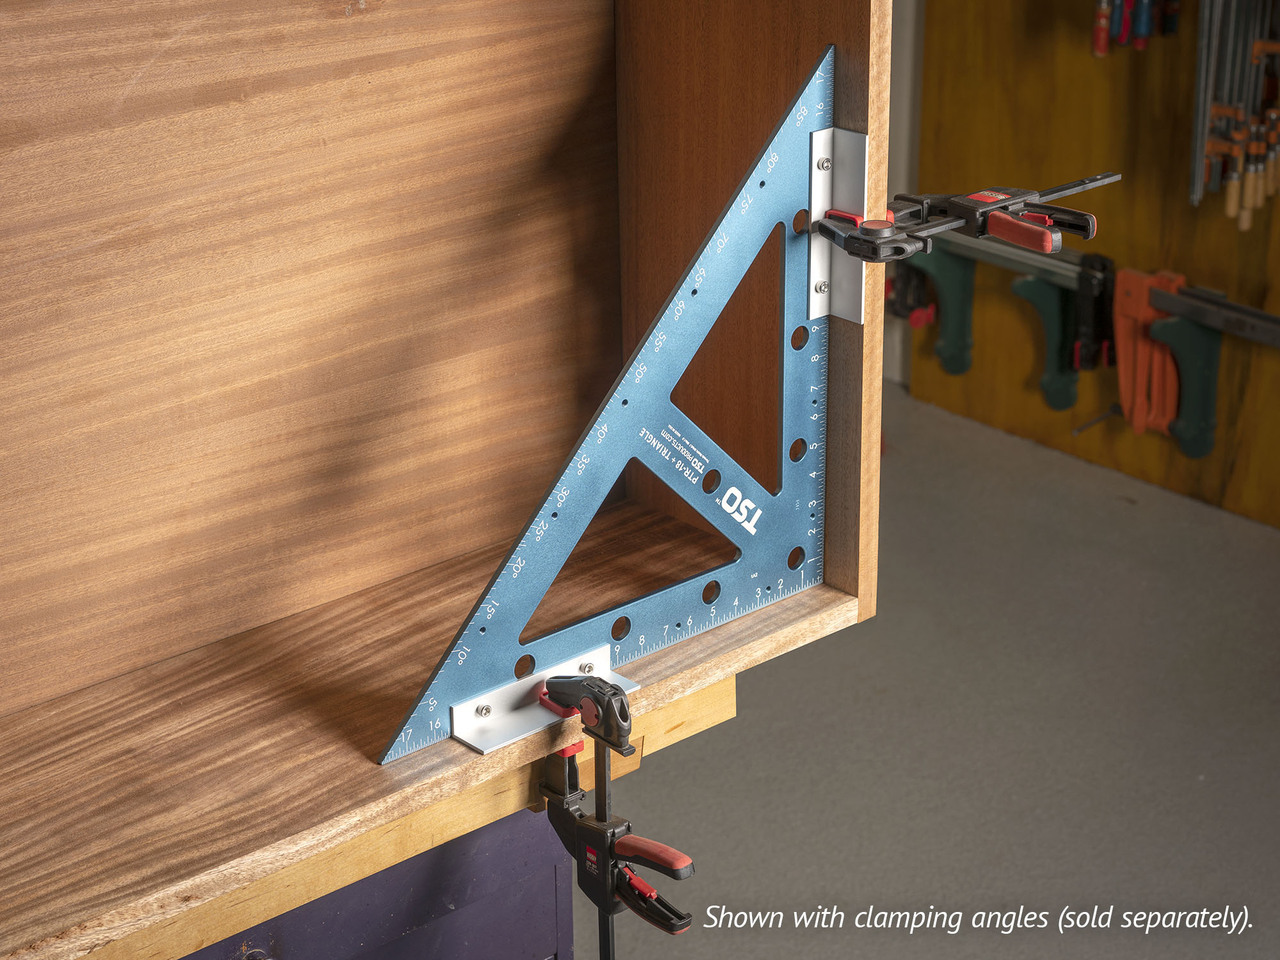 With clamping angles (sold separately), you can transform the PTR-18 into a jumbo-sized clamping square.